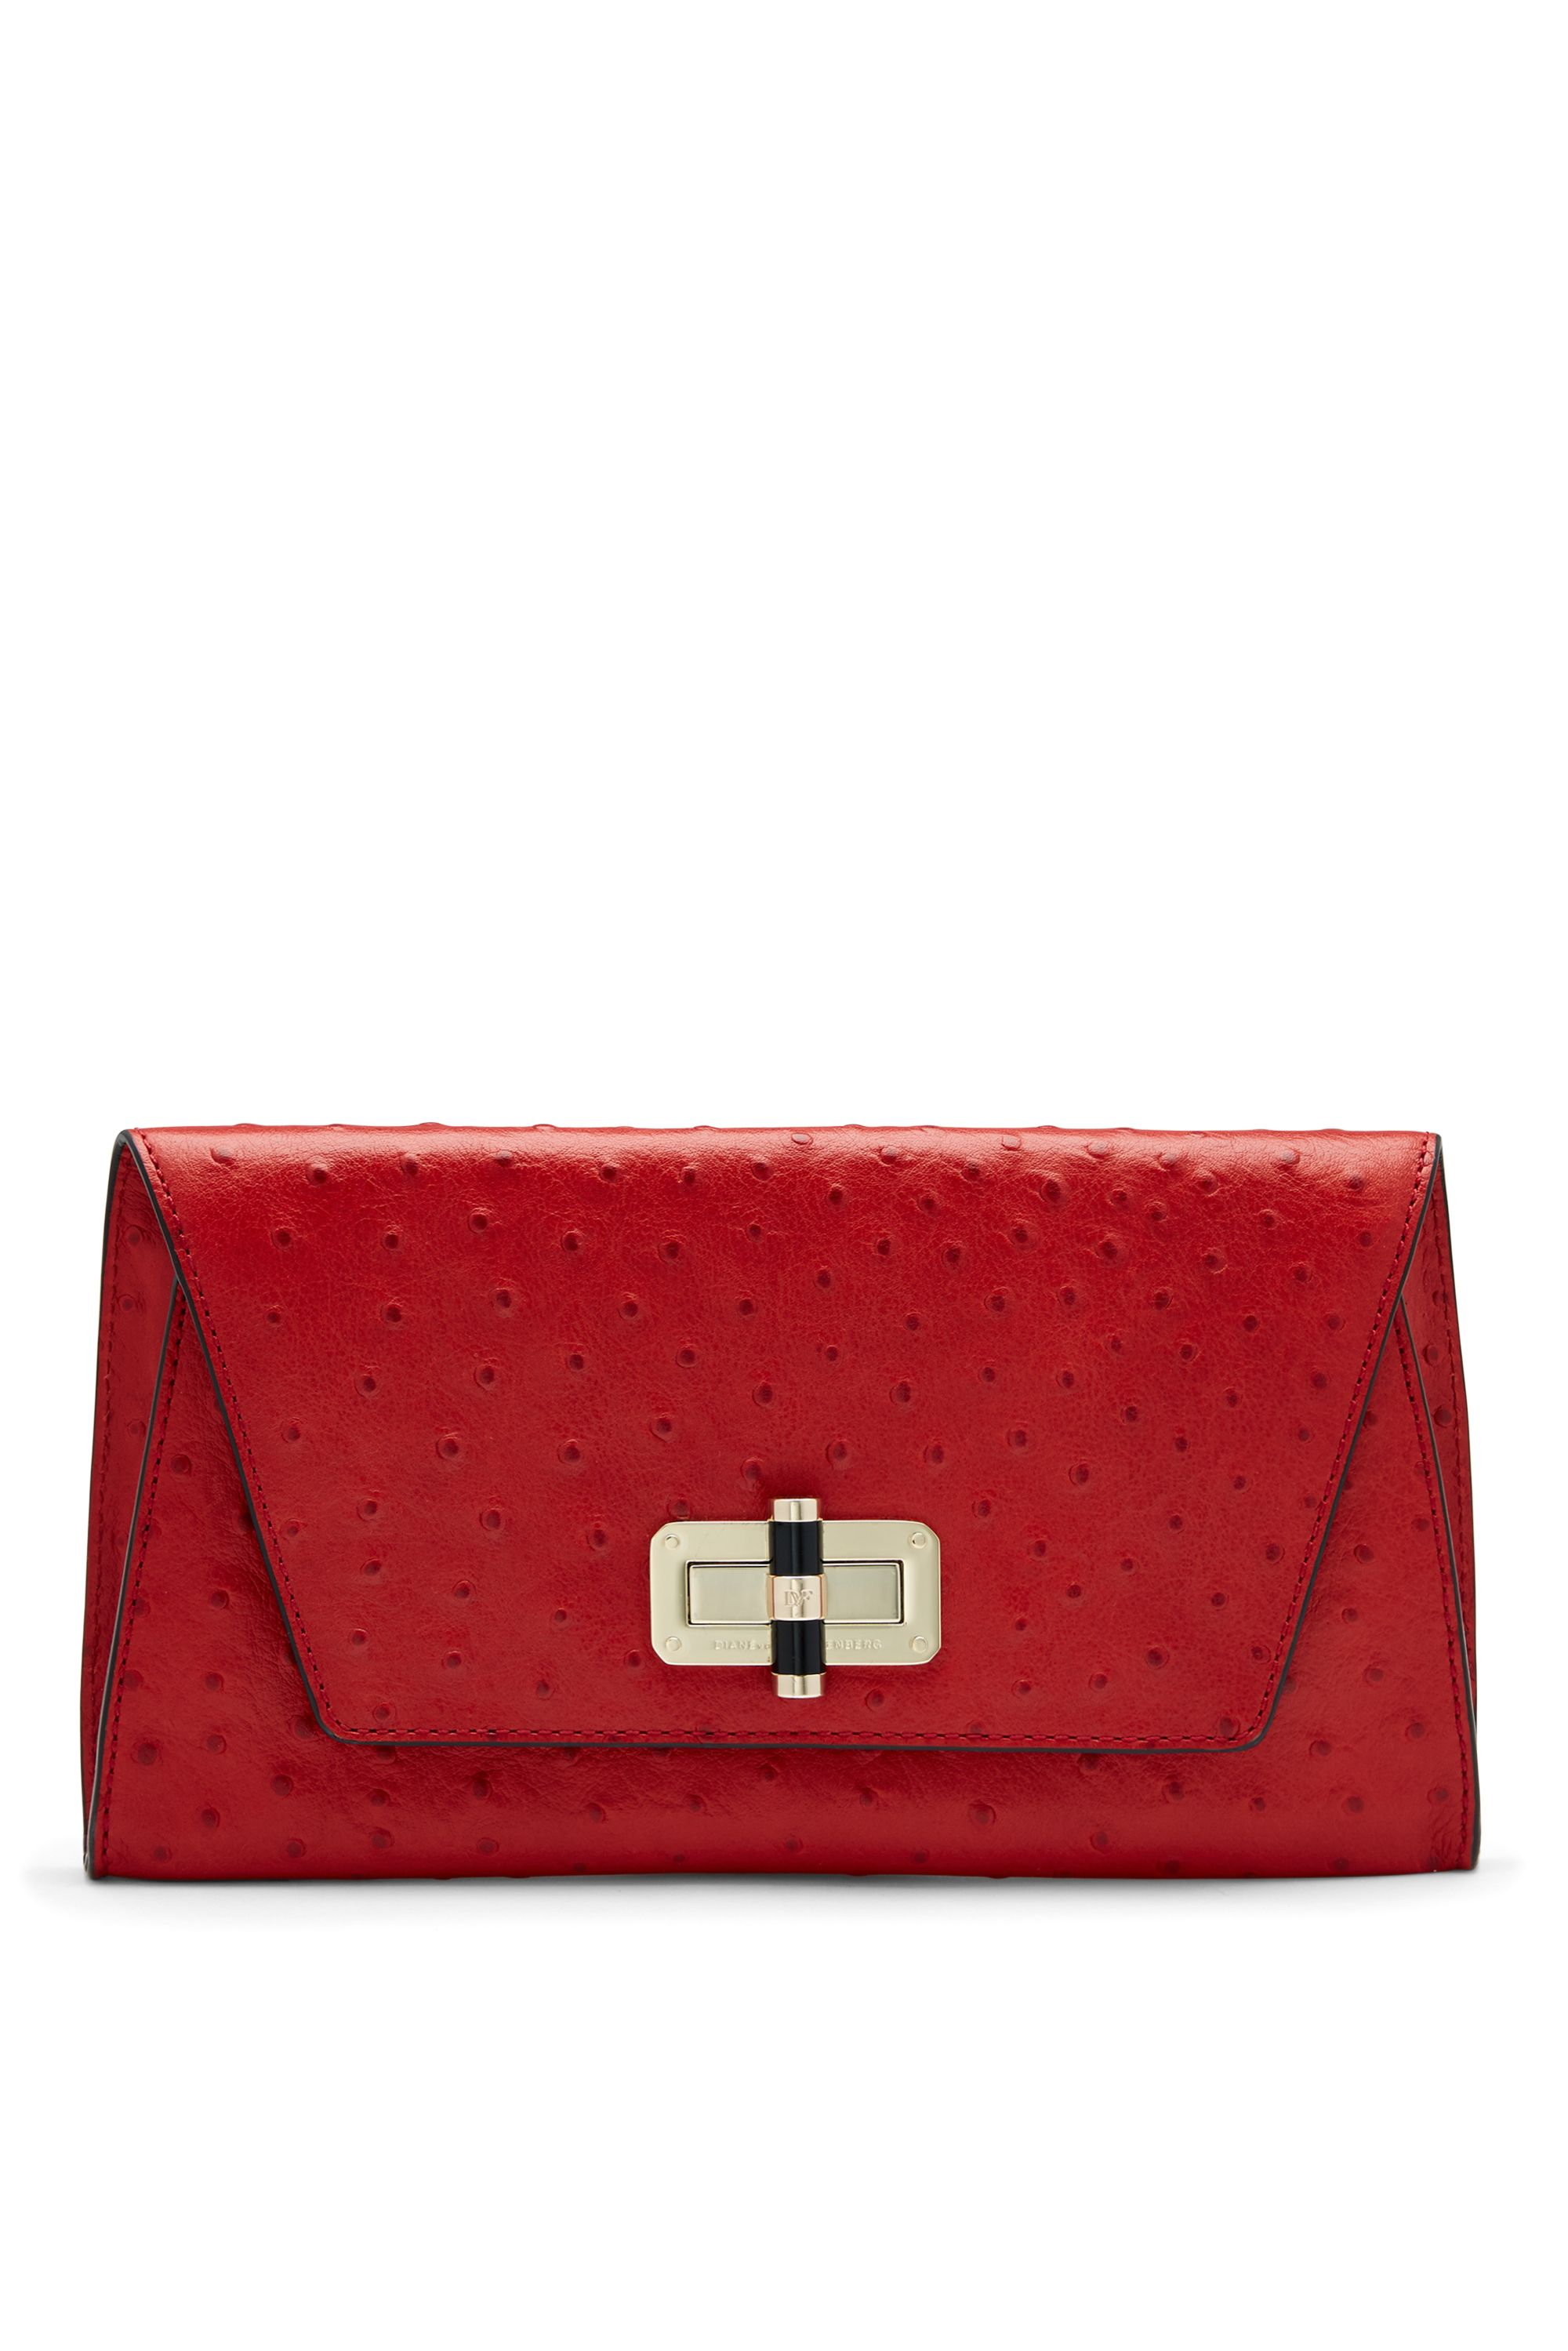 440 Gallery Uptown Embossed Ostrich Clutch